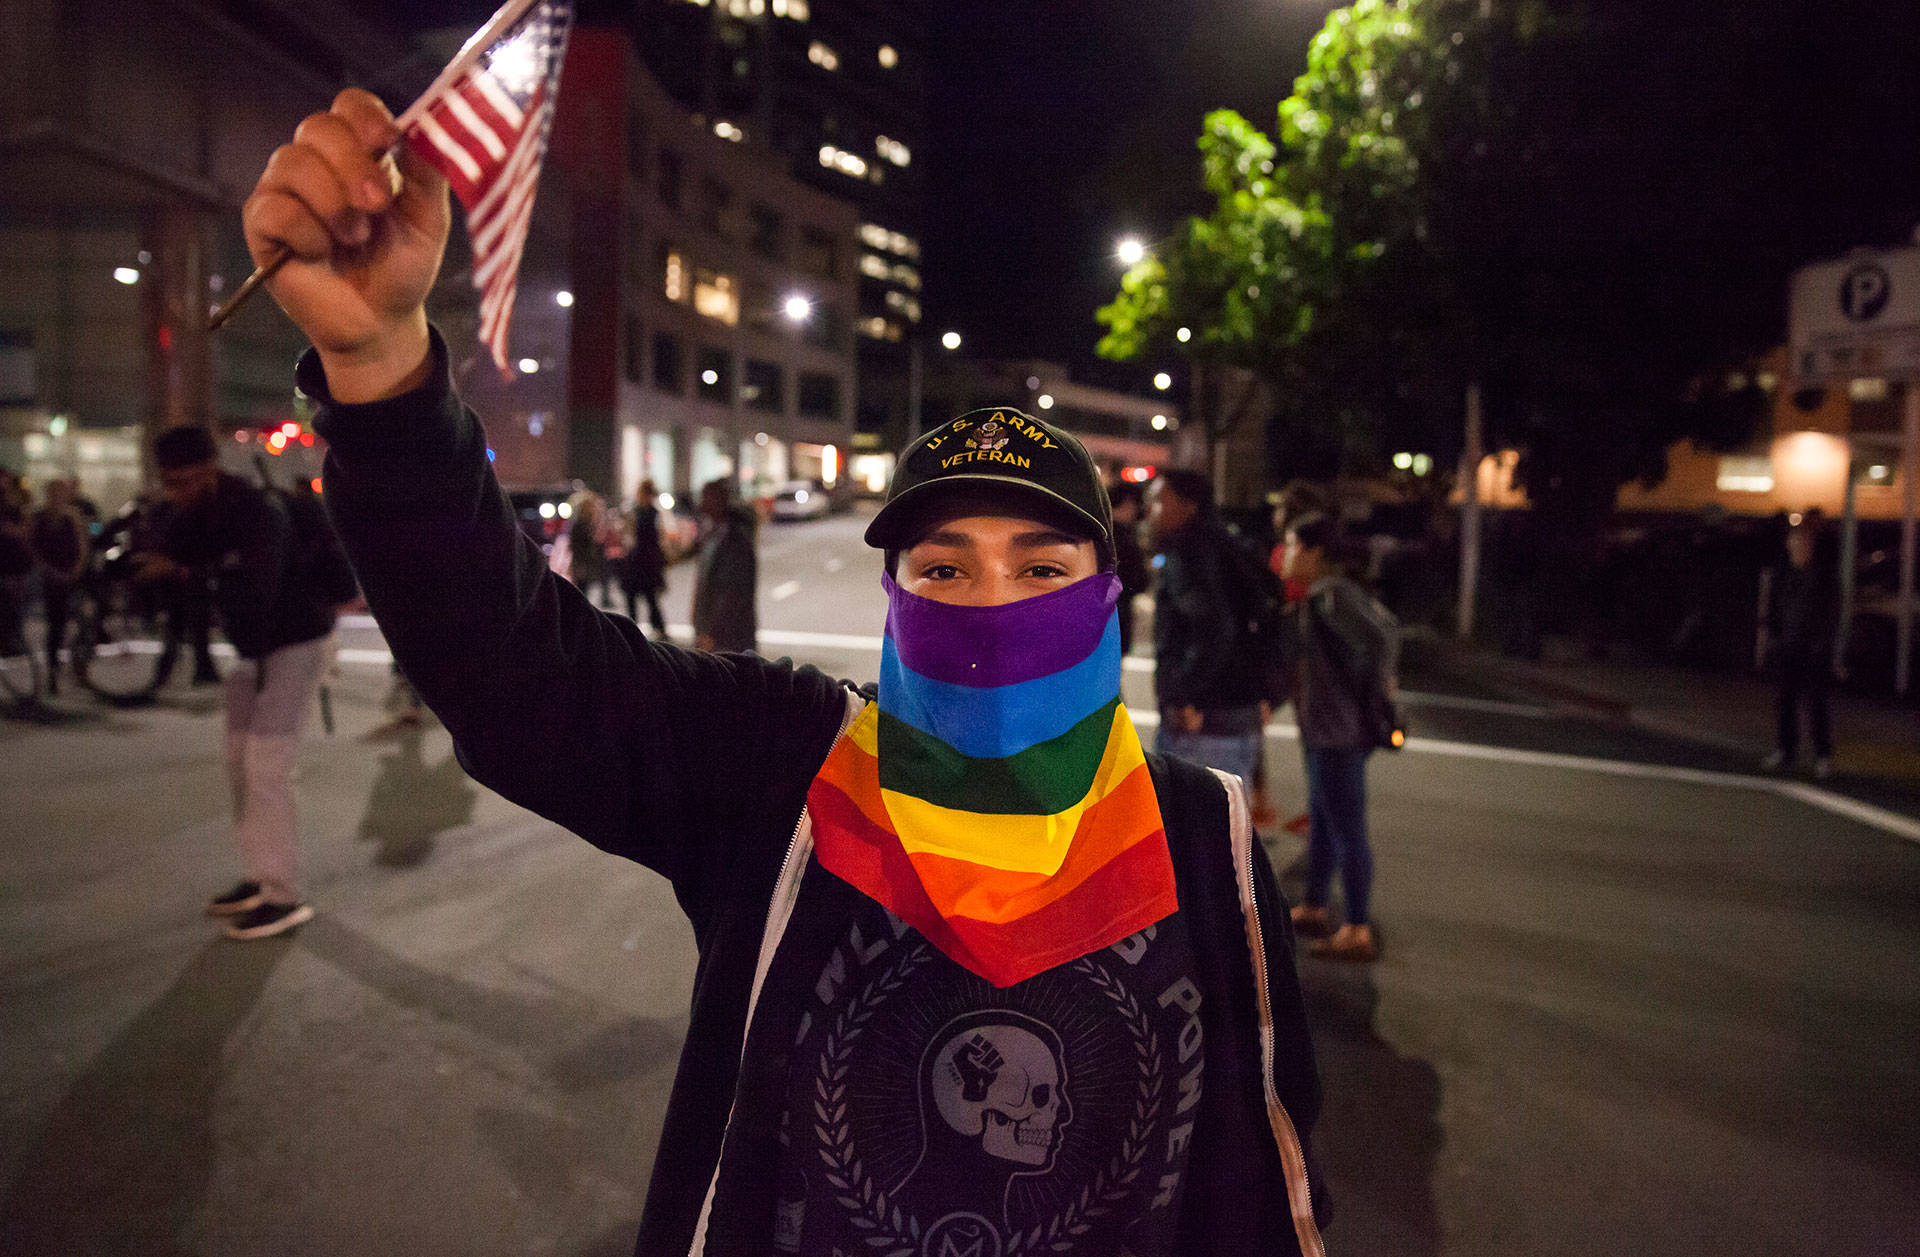 An anti-Donald Trump protester holds an American flag during a protest in Oakland last week.  Brittany Hosea-Small/KQED